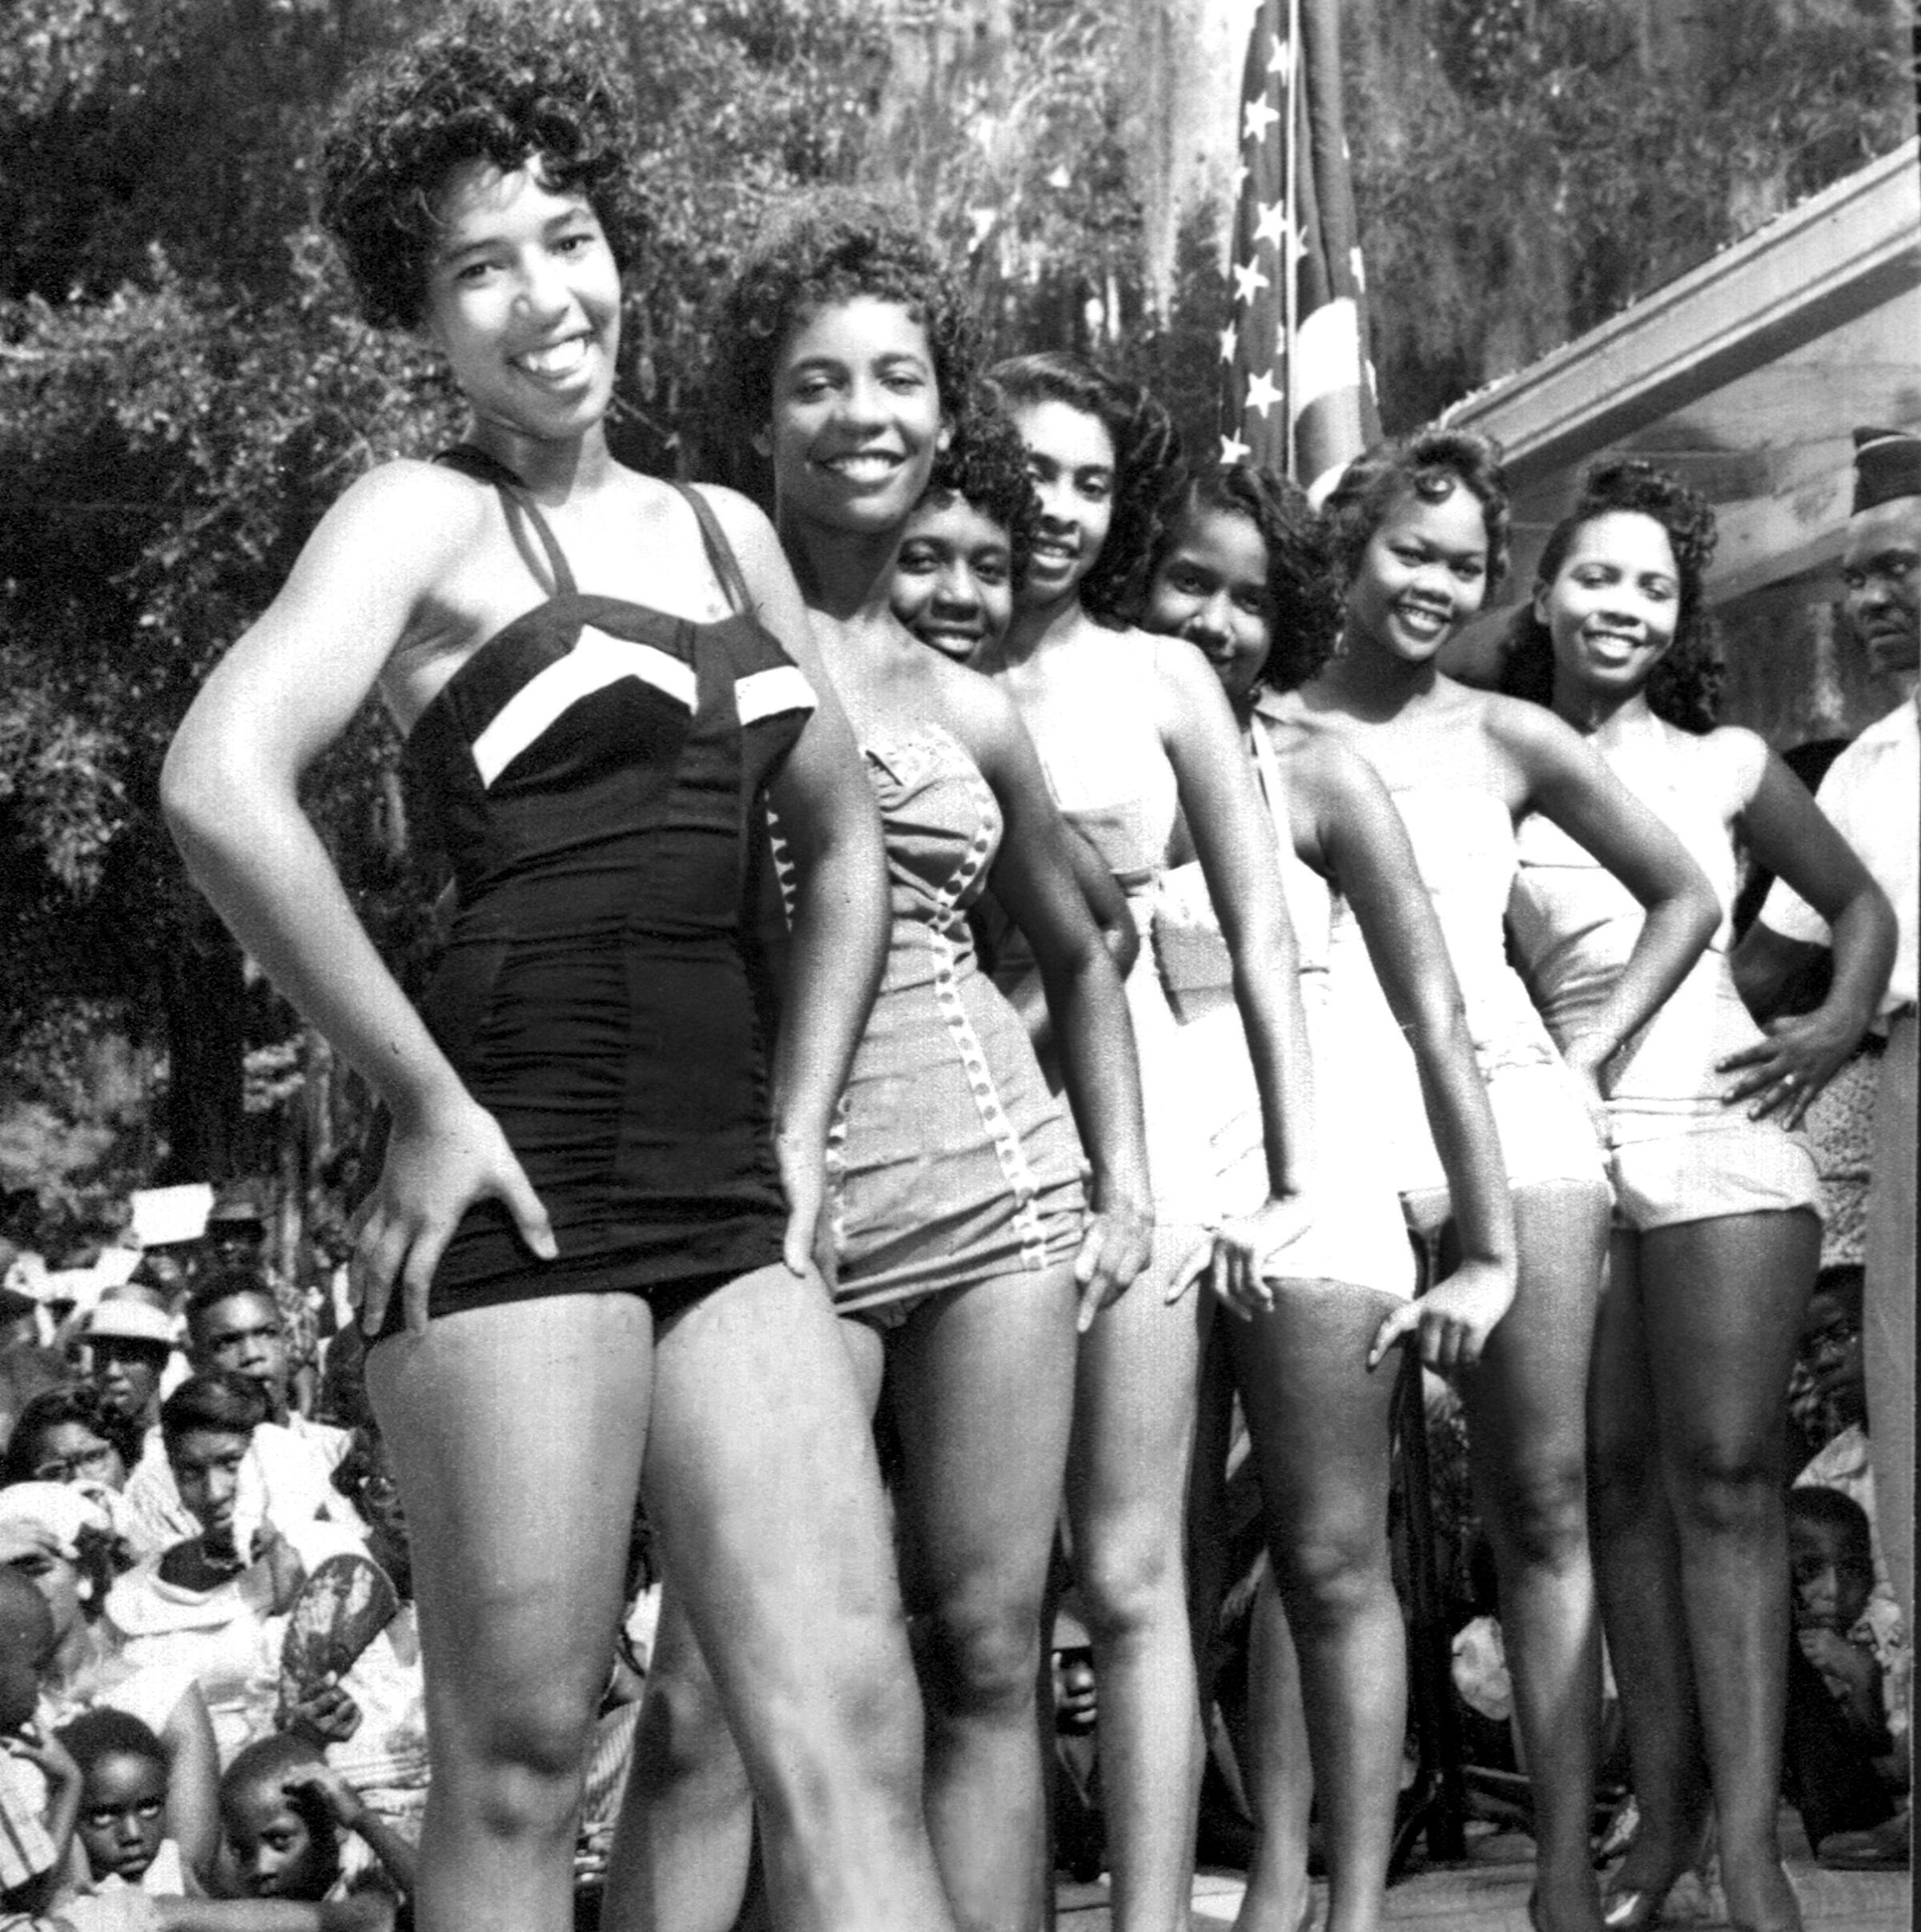 Paradise Park photos inspired Lu Vickers 'oral history' of segregated vacation spot